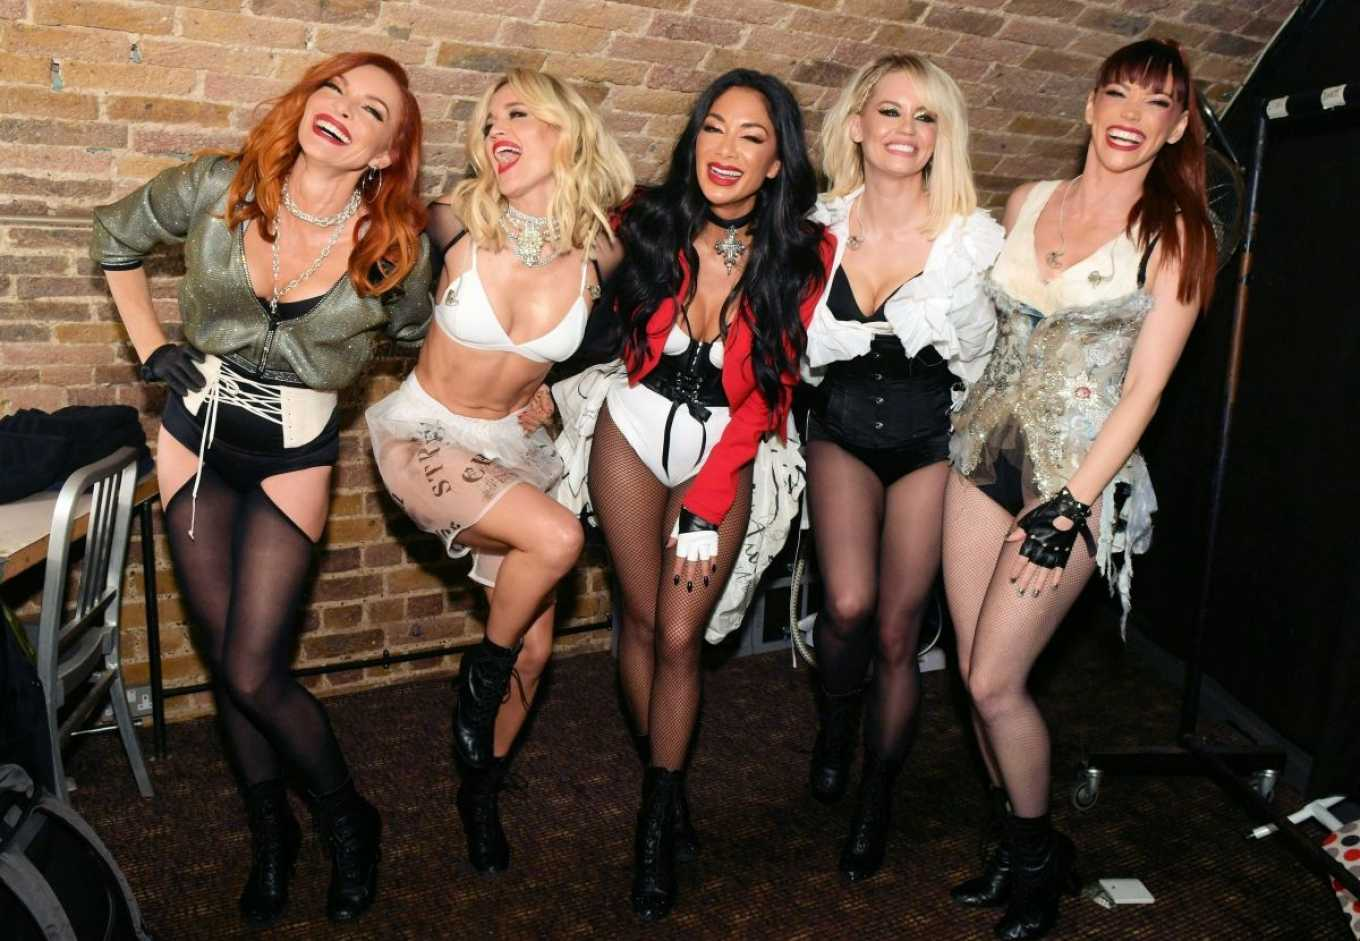 The Pussycat Dolls Hot Performance Photo Gallery